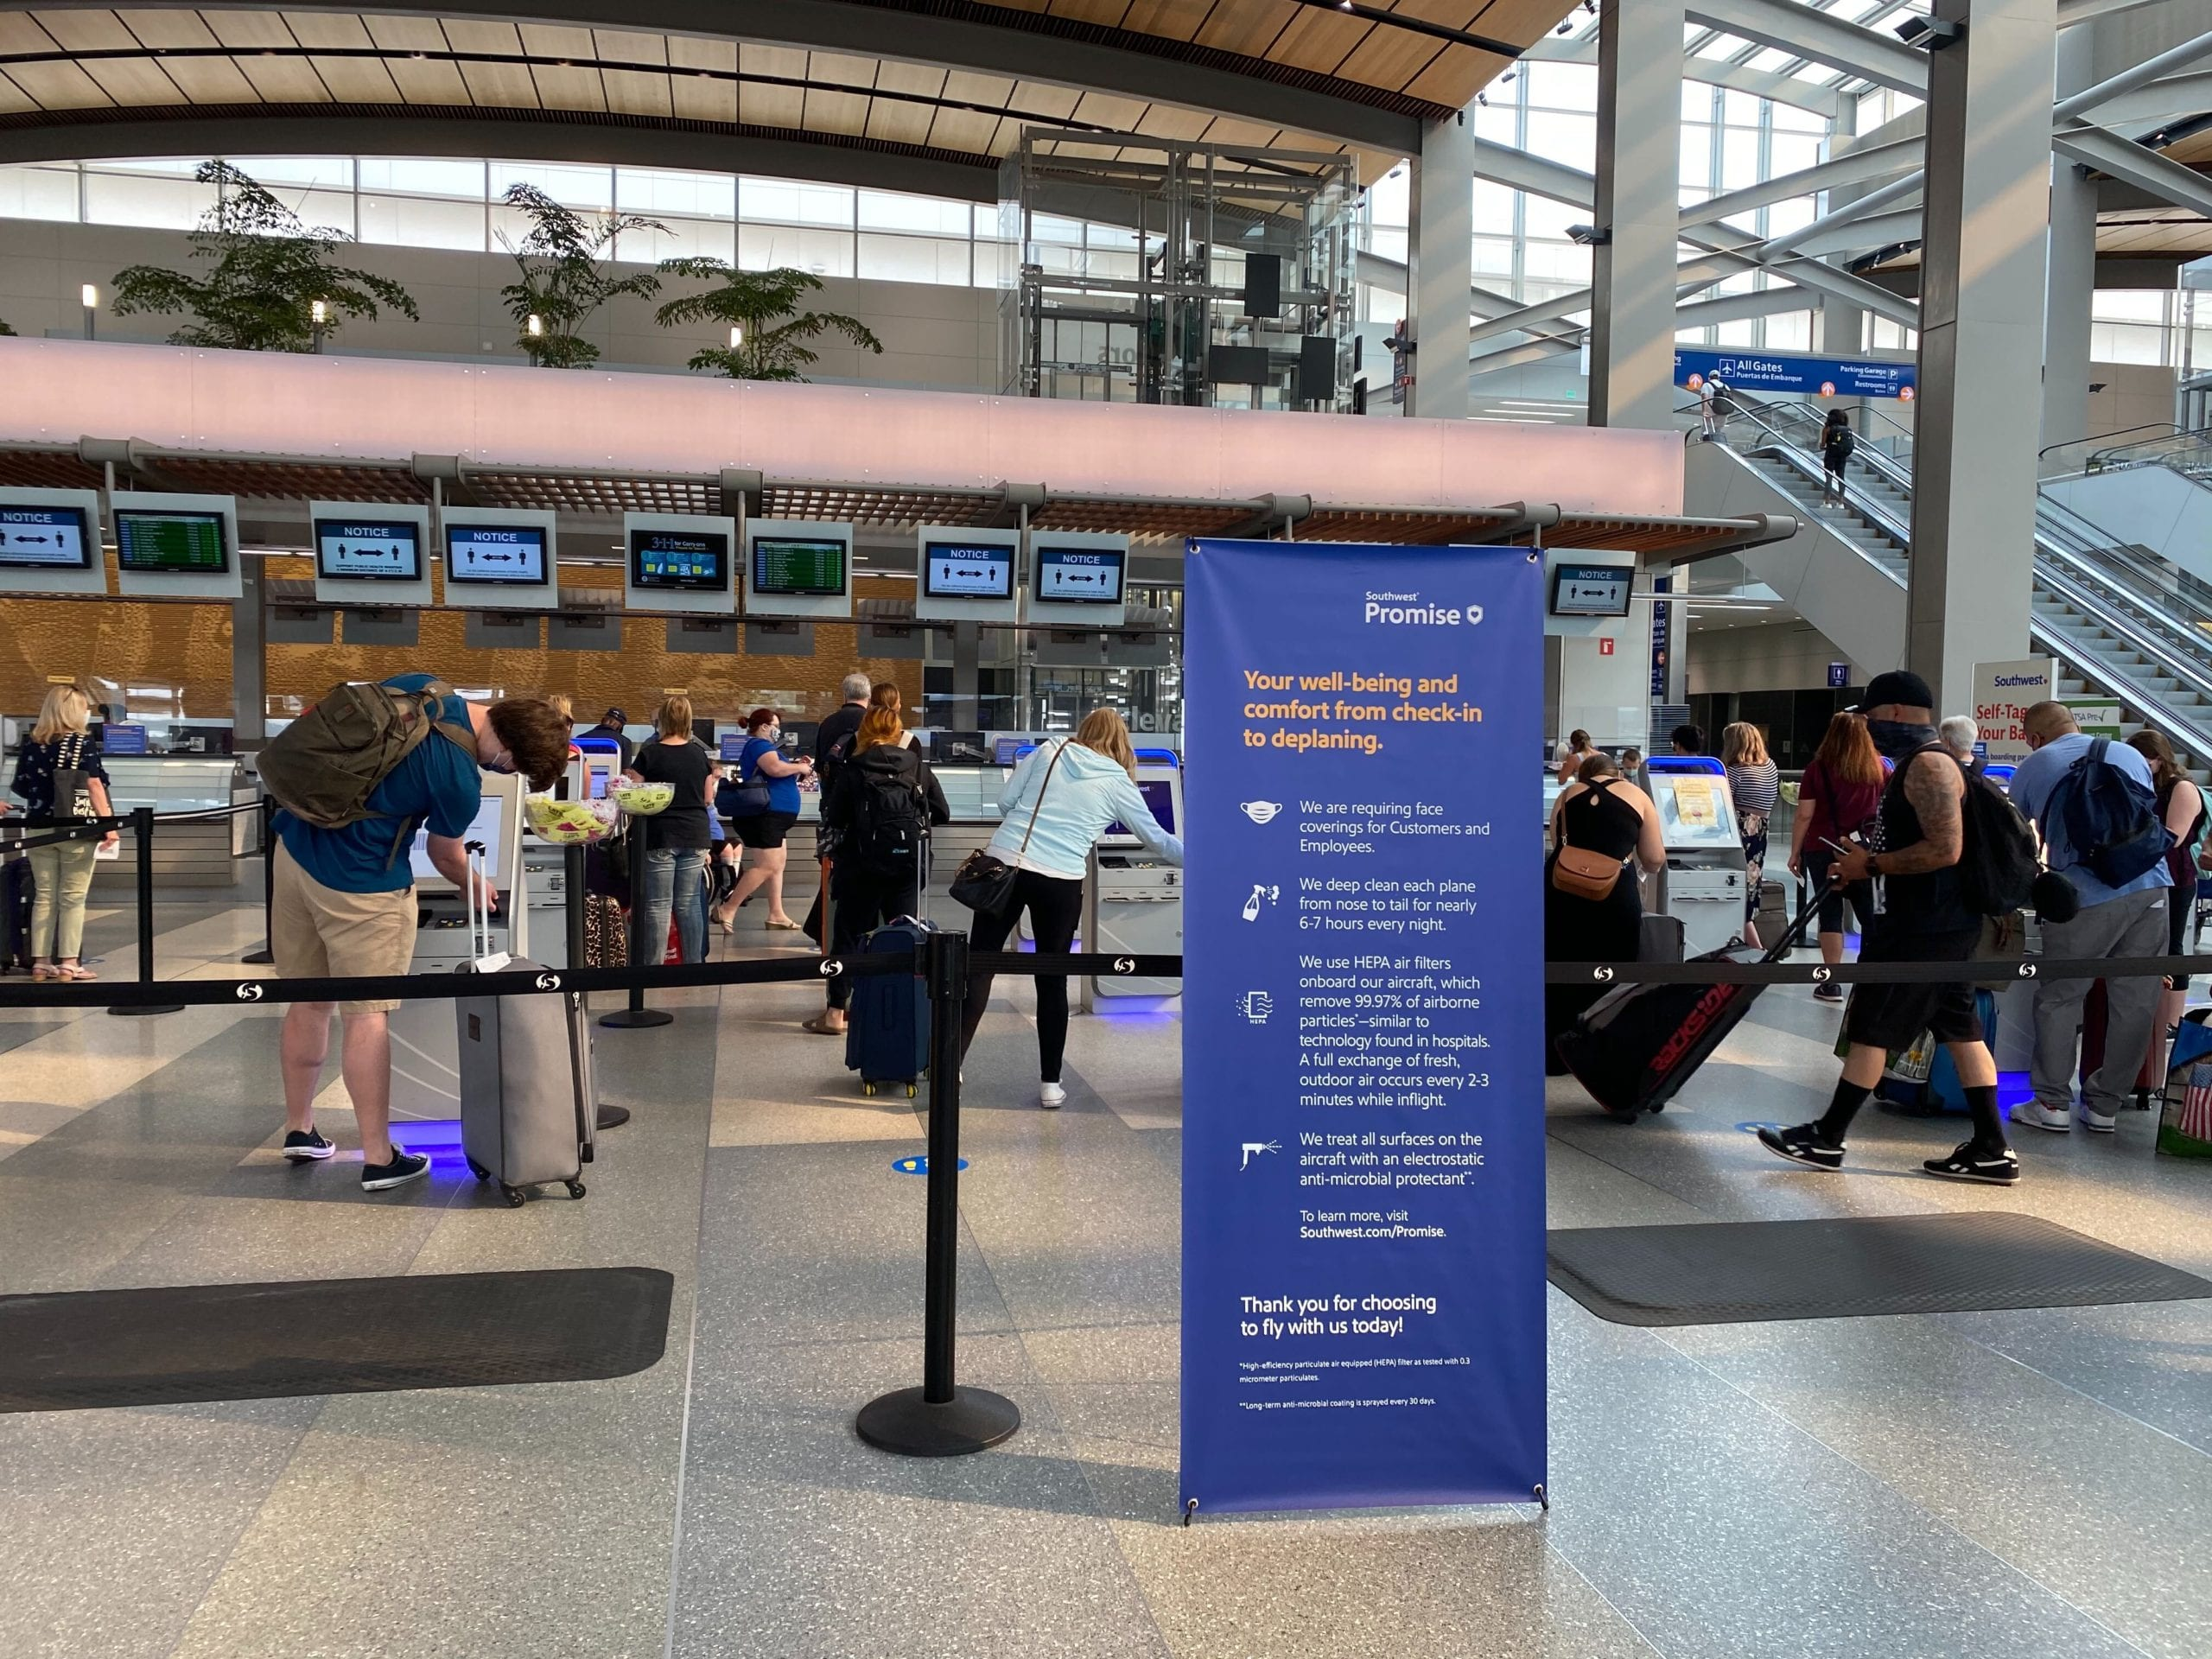 southwest check-in area